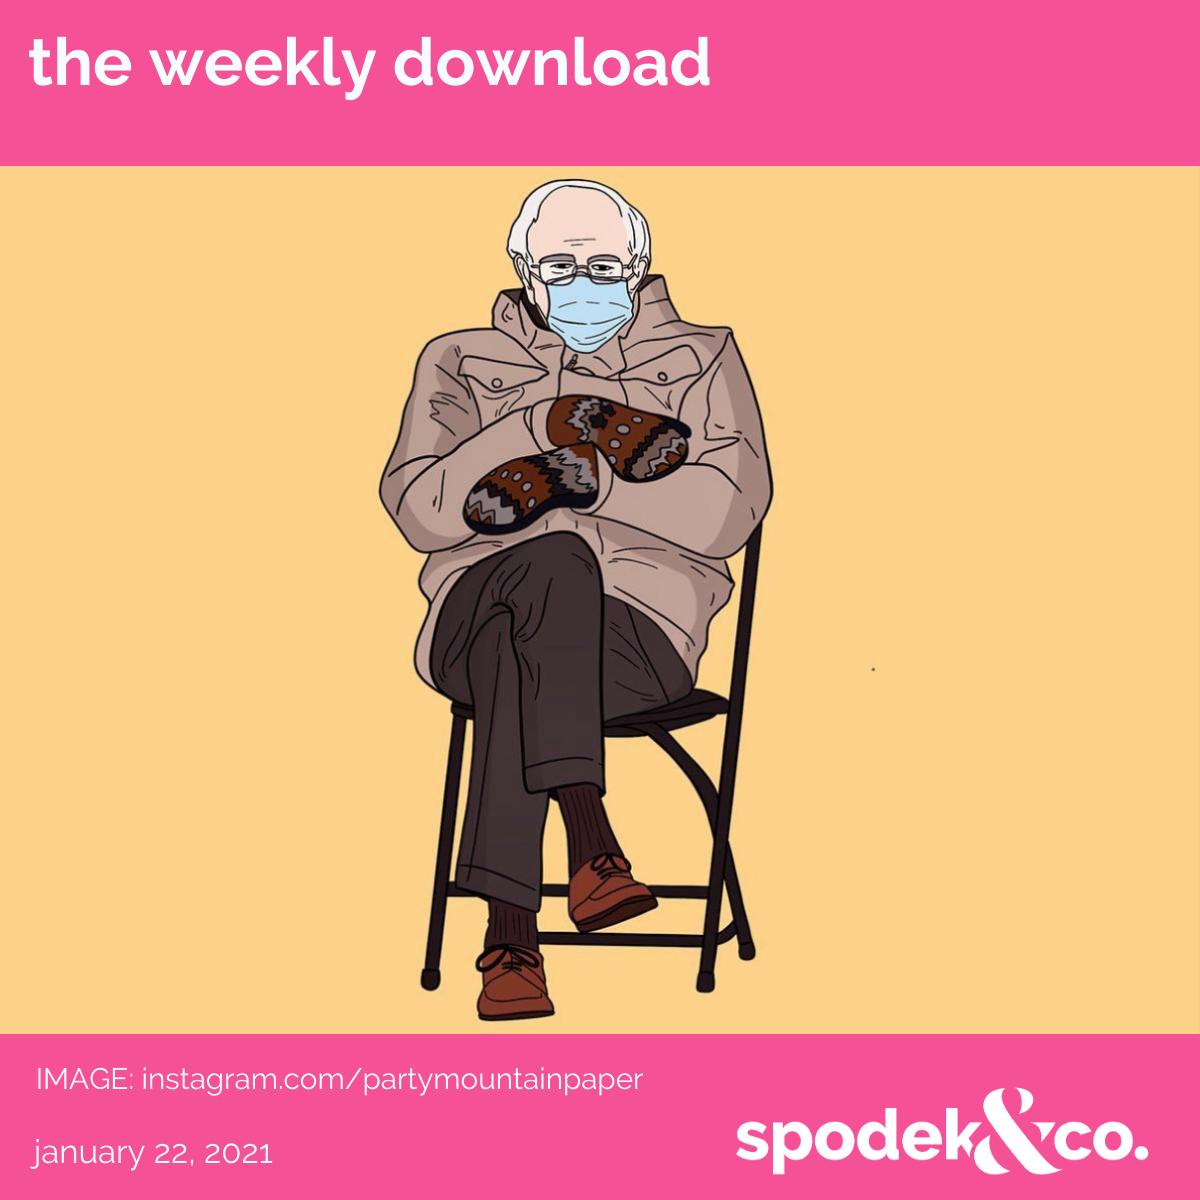 The Weekly Download – January 22, 2021